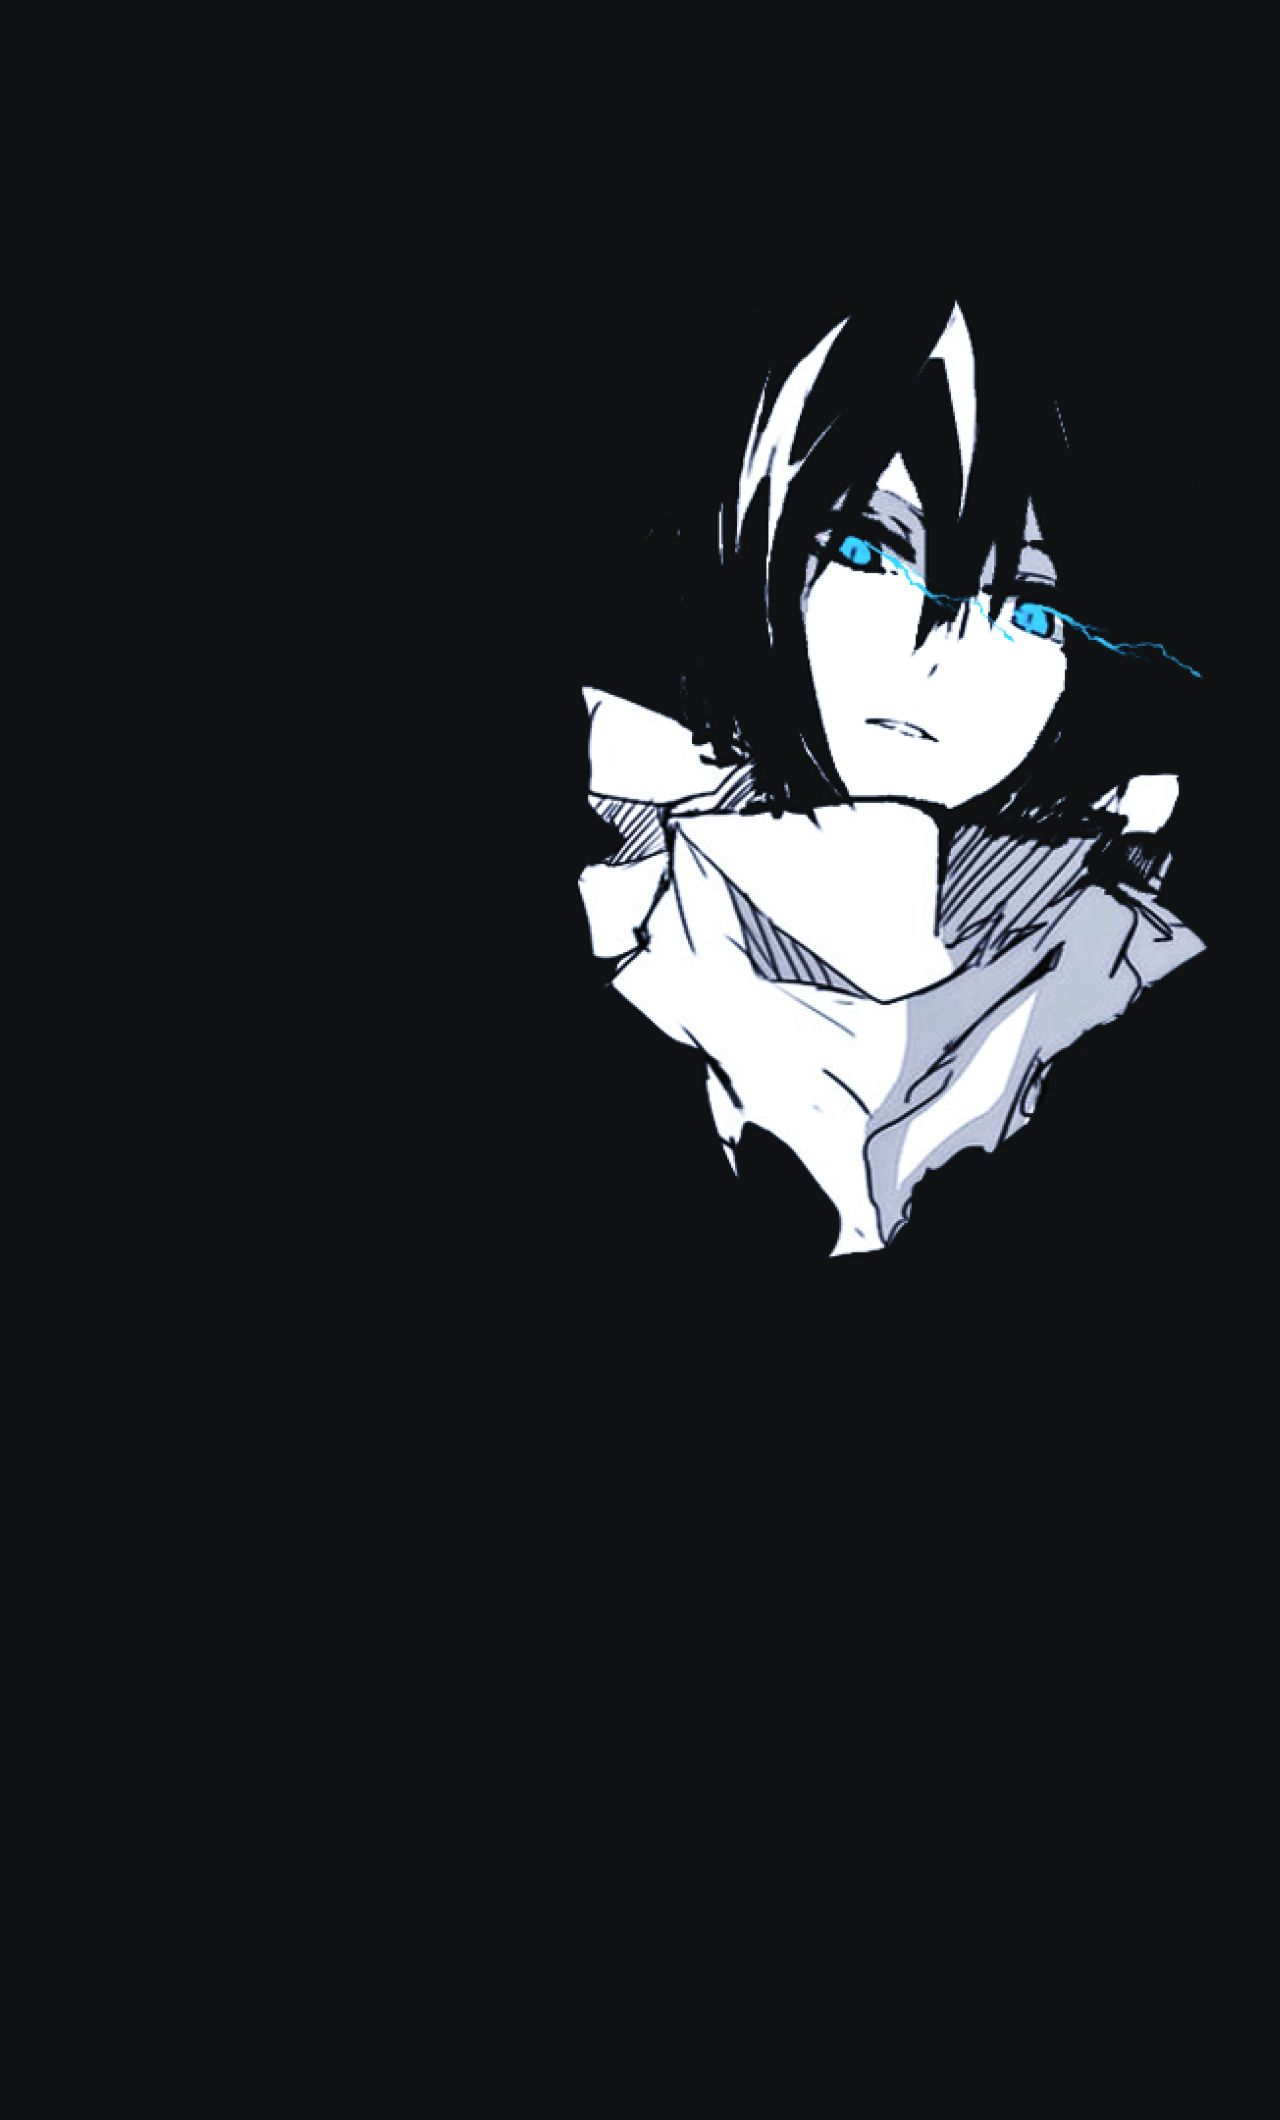 Anime Black Iphone Wallpaper In 2020 Anime Wallpaper Phone Black Cat Anime Noragami Anime